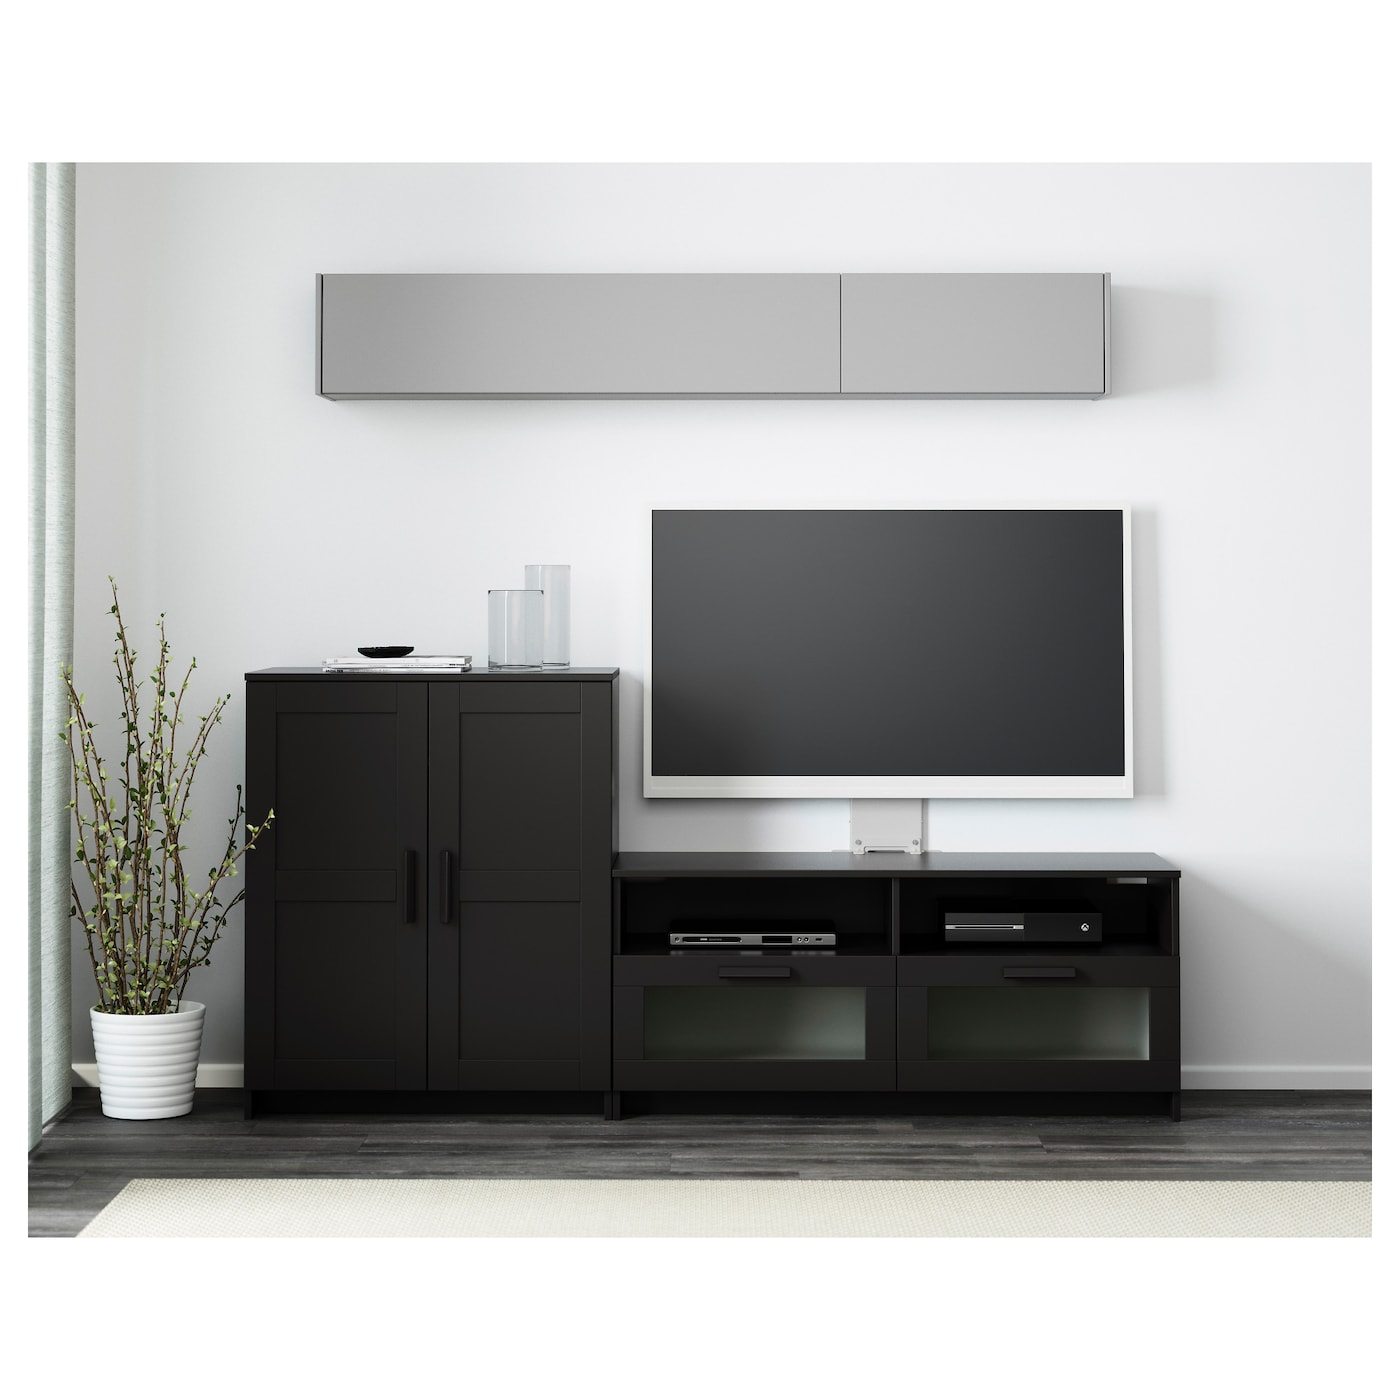 brimnes combinaison meuble tv noir 200 x 41 x 95 cm ikea. Black Bedroom Furniture Sets. Home Design Ideas